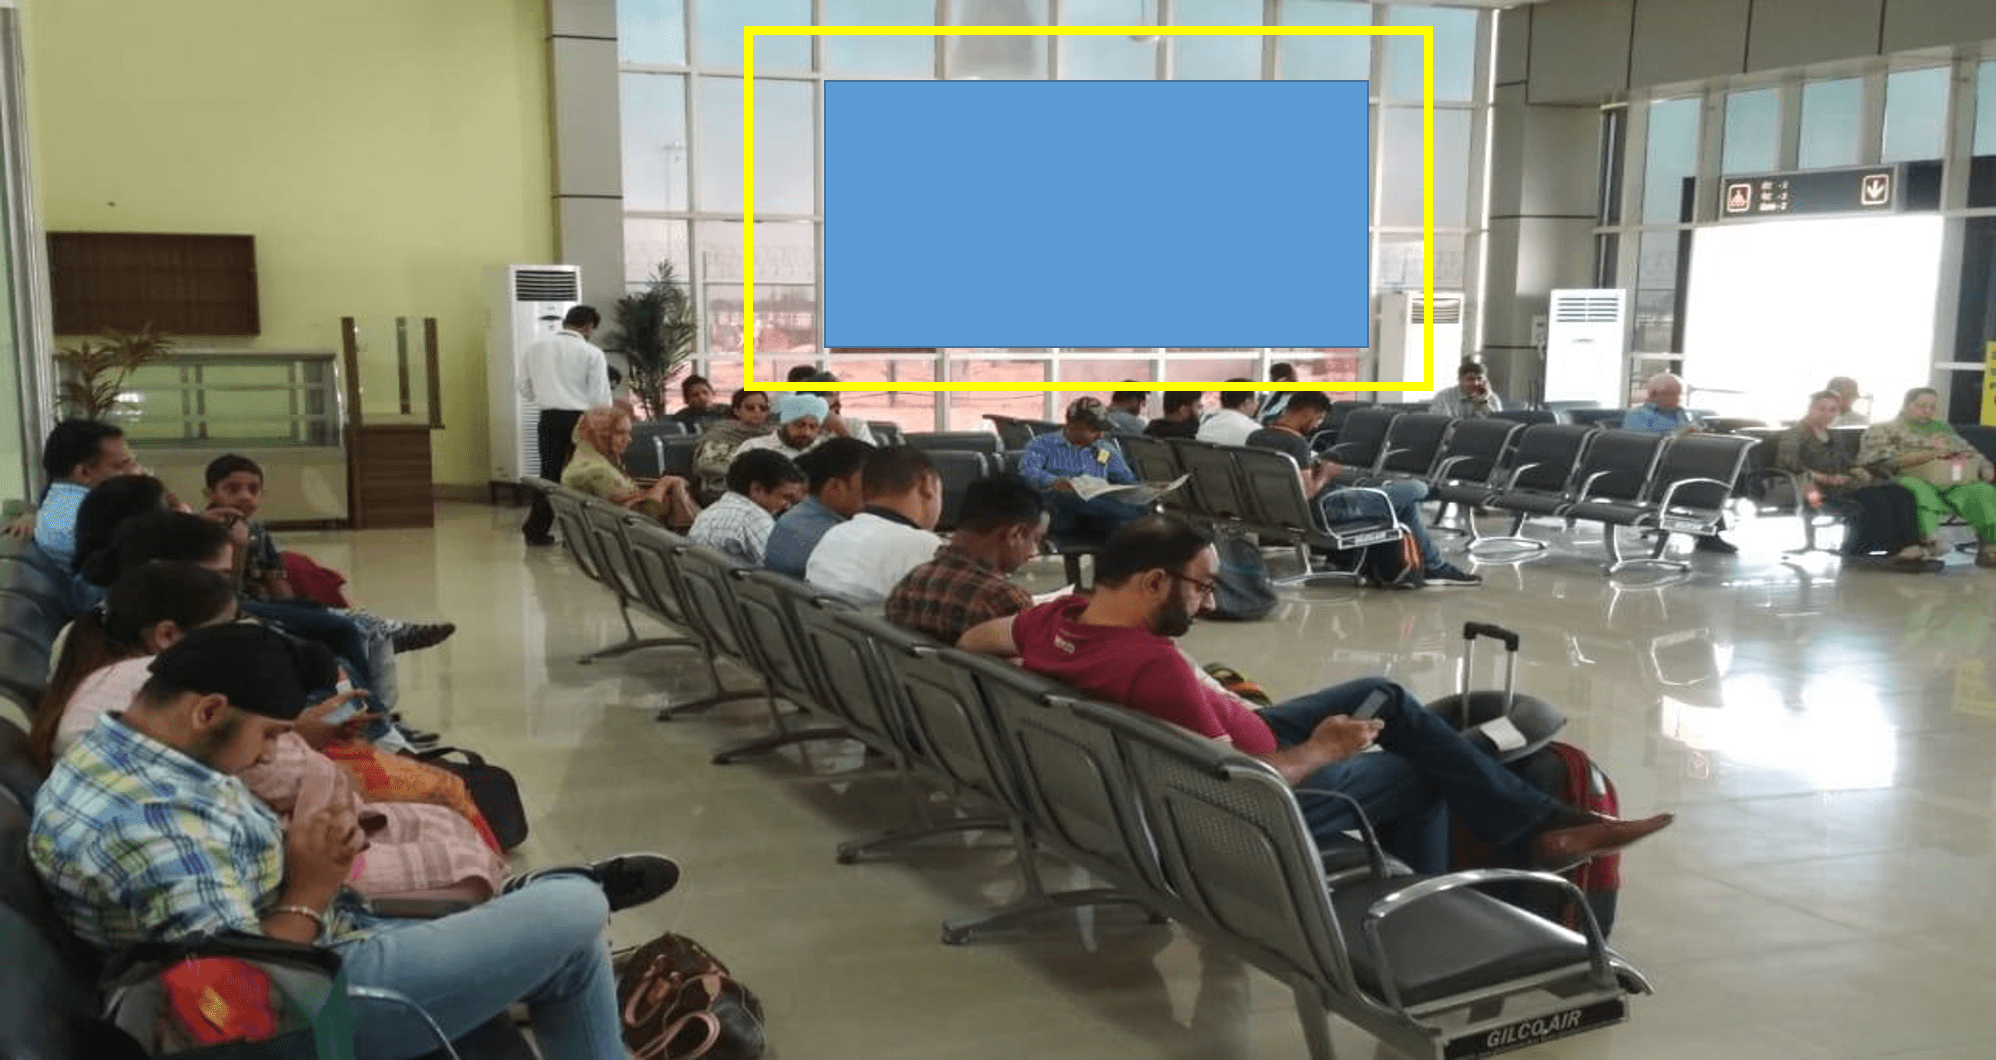 Option No.2 Branding at Airport, Security Hold Area, Bathinda